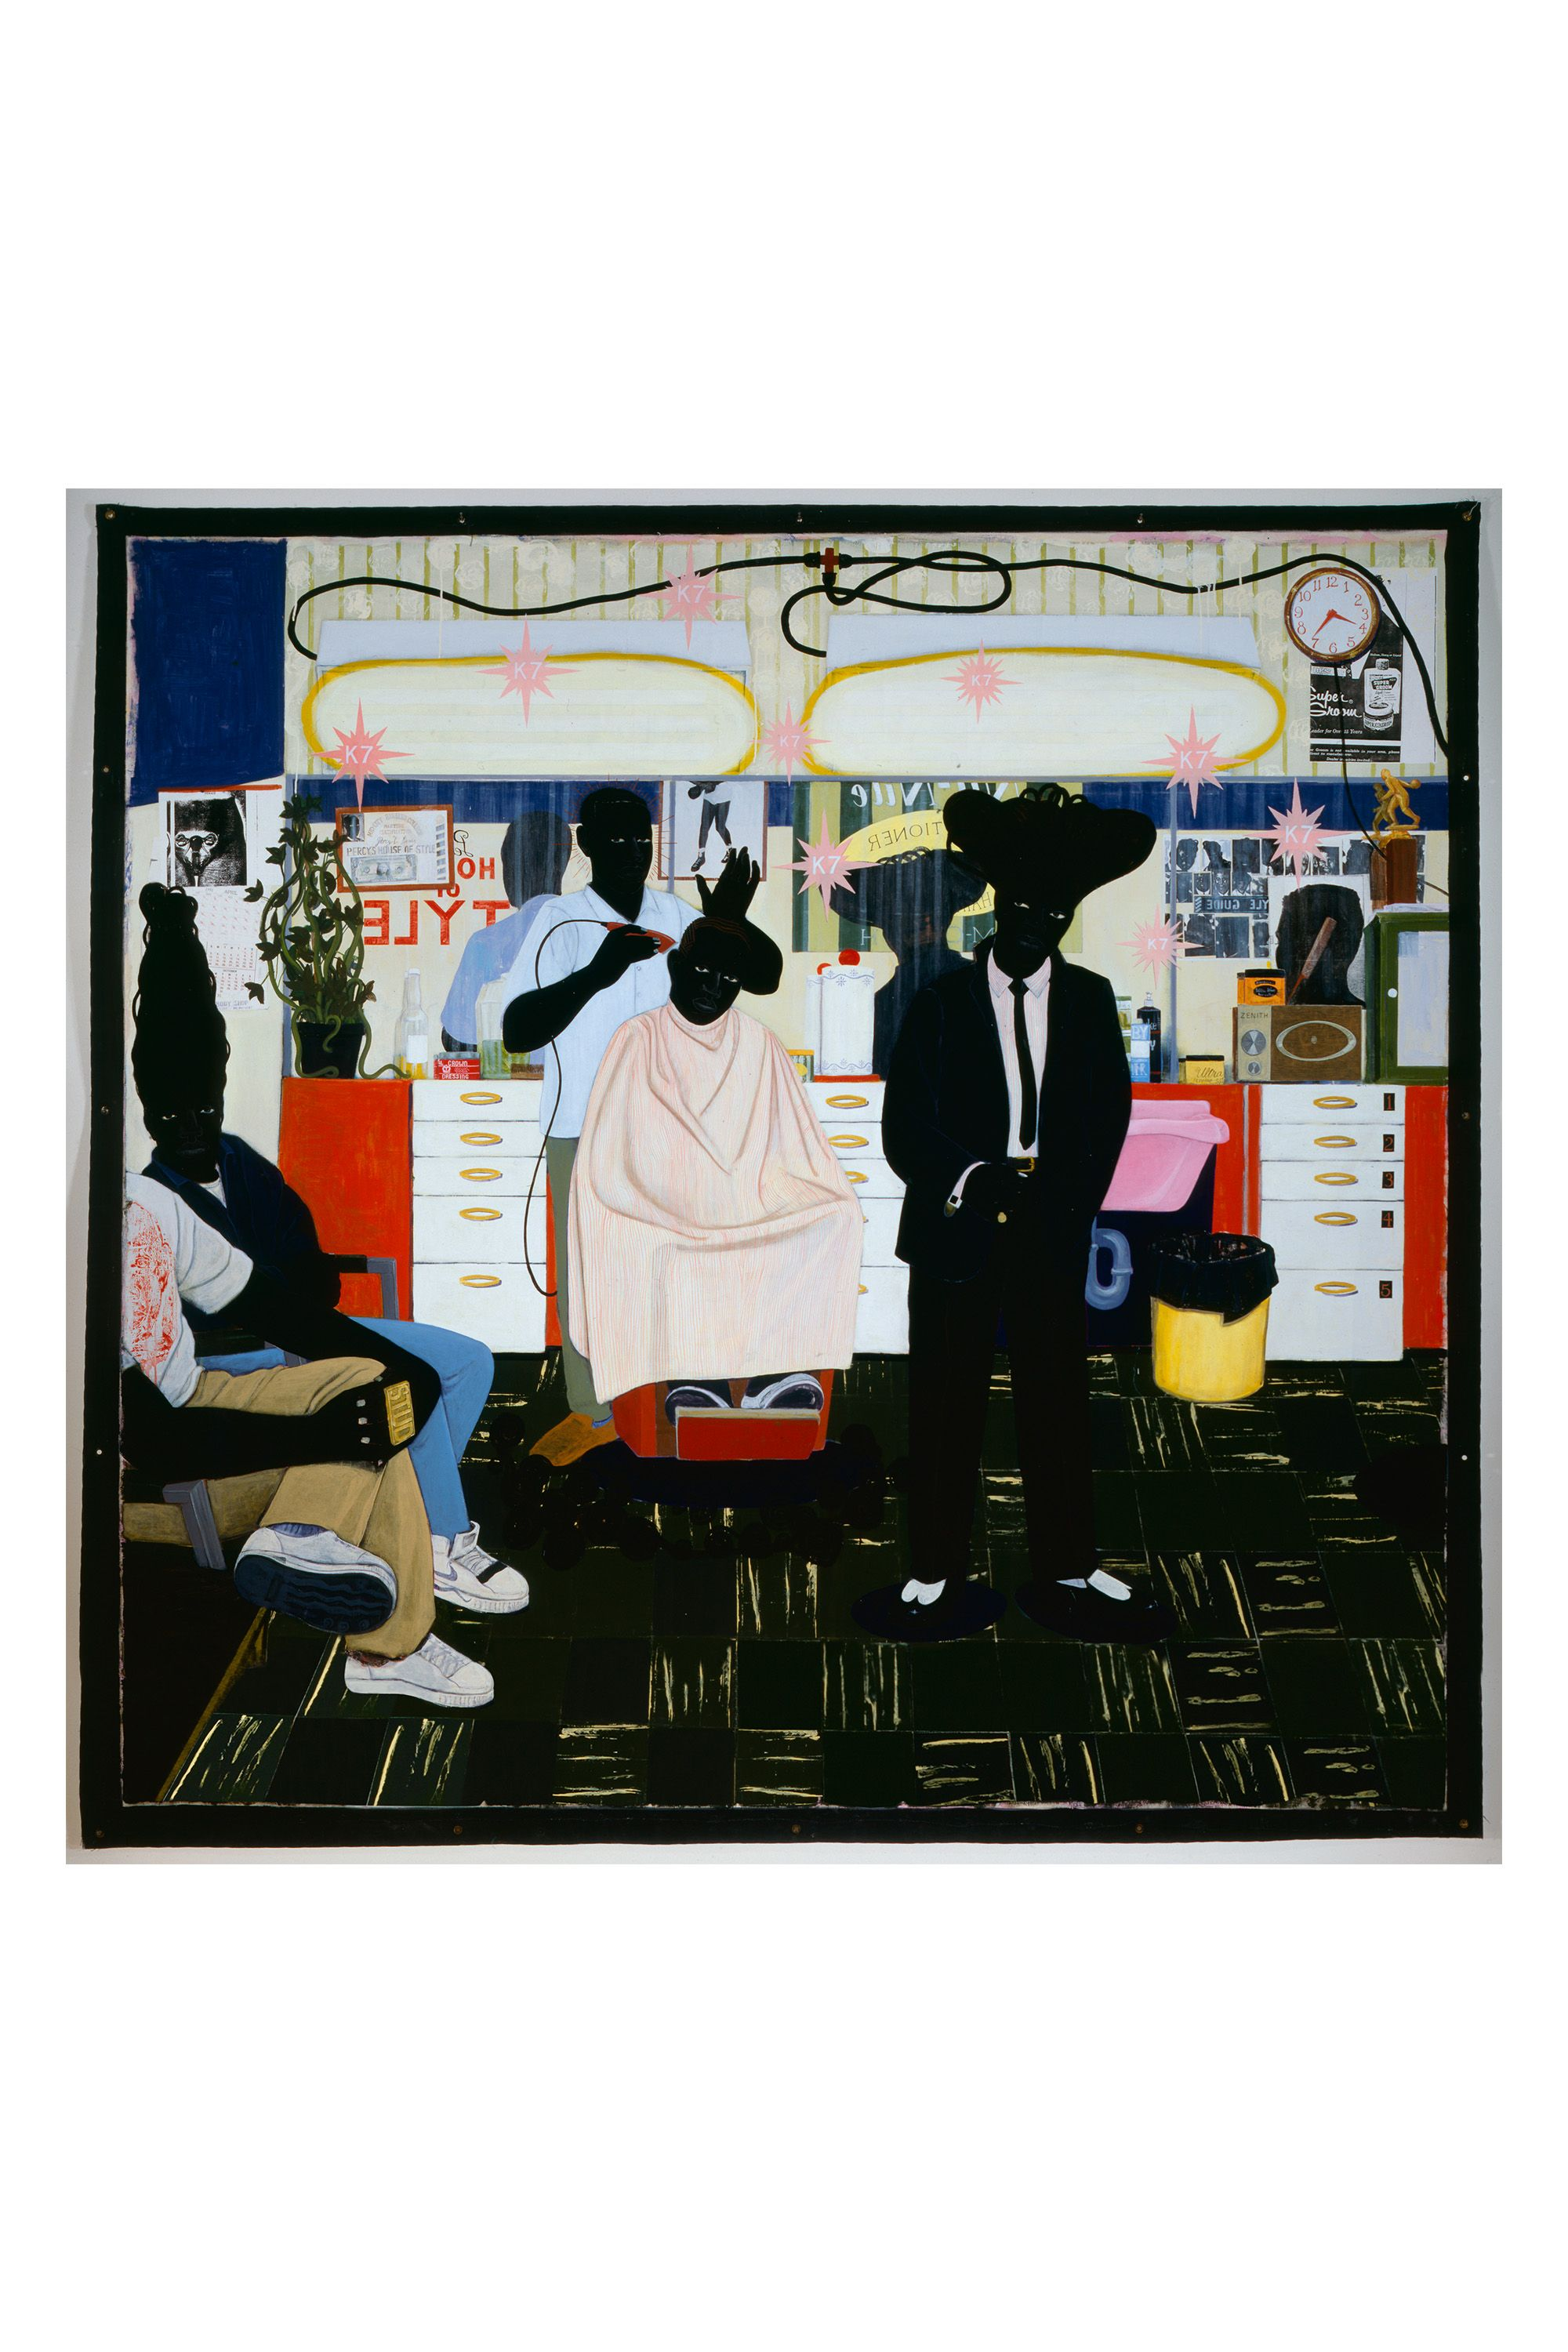 "<p>Kerry James Marshall: Mastry, a retrospective of mural-like paintings that focus on everyday scenes from African American life with tongue-in-cheek nods to the great classics of Western art—such as De Style (1993), at right, in which a barber is haloed like a saint—is the most beautiful, inspiring exhibit I've ever seen. I visited the show multiple times when it was at the Met Breuer in New York. West Coast readers, you're in luck: It's now open at the Museum of Contemporary Art, Los Angeles, through July 3.<span data-redactor-tag=""span""></span></p>"